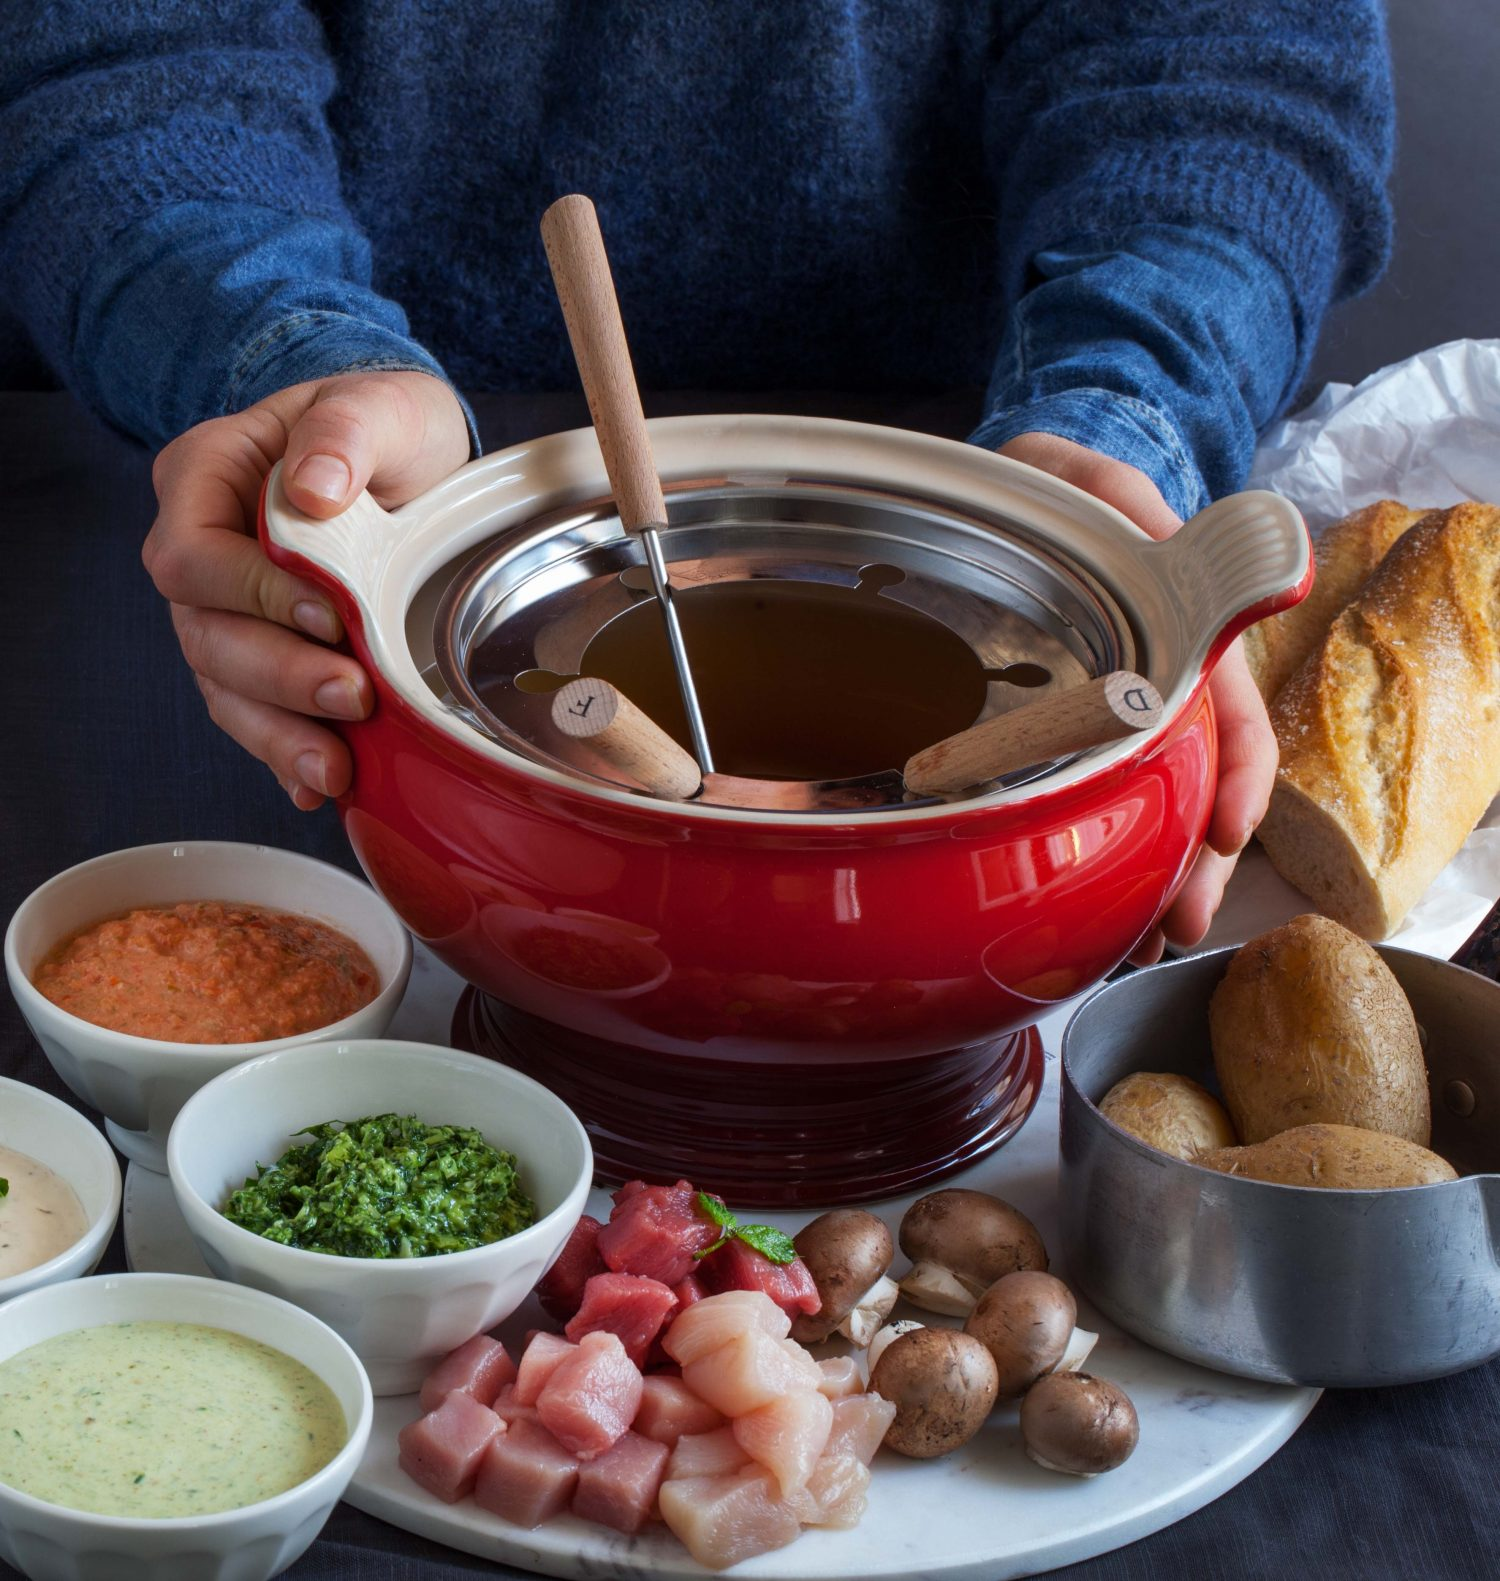 Meat Fondue or Hot Pot for Christmas?